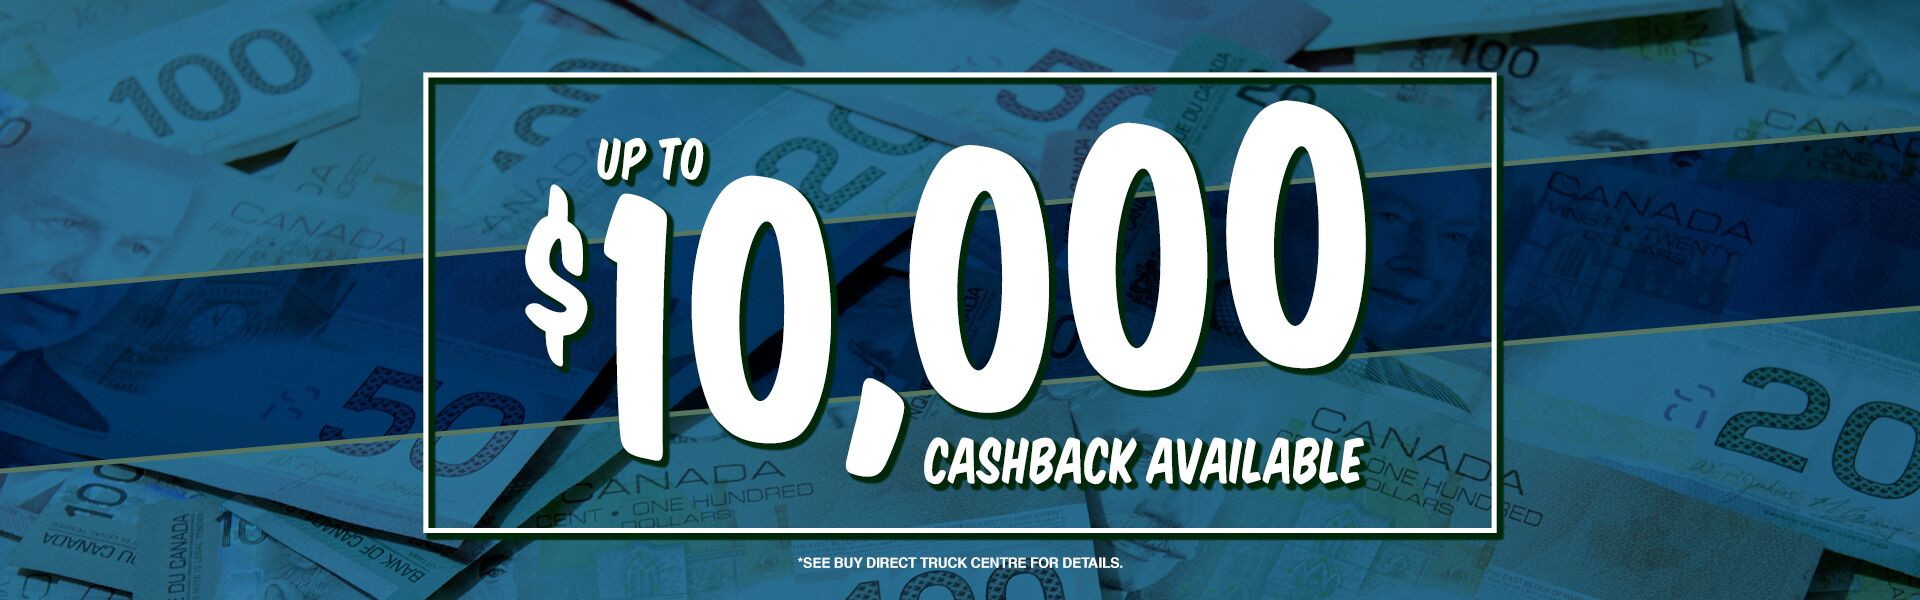 Up to $10,000 Cashback Available